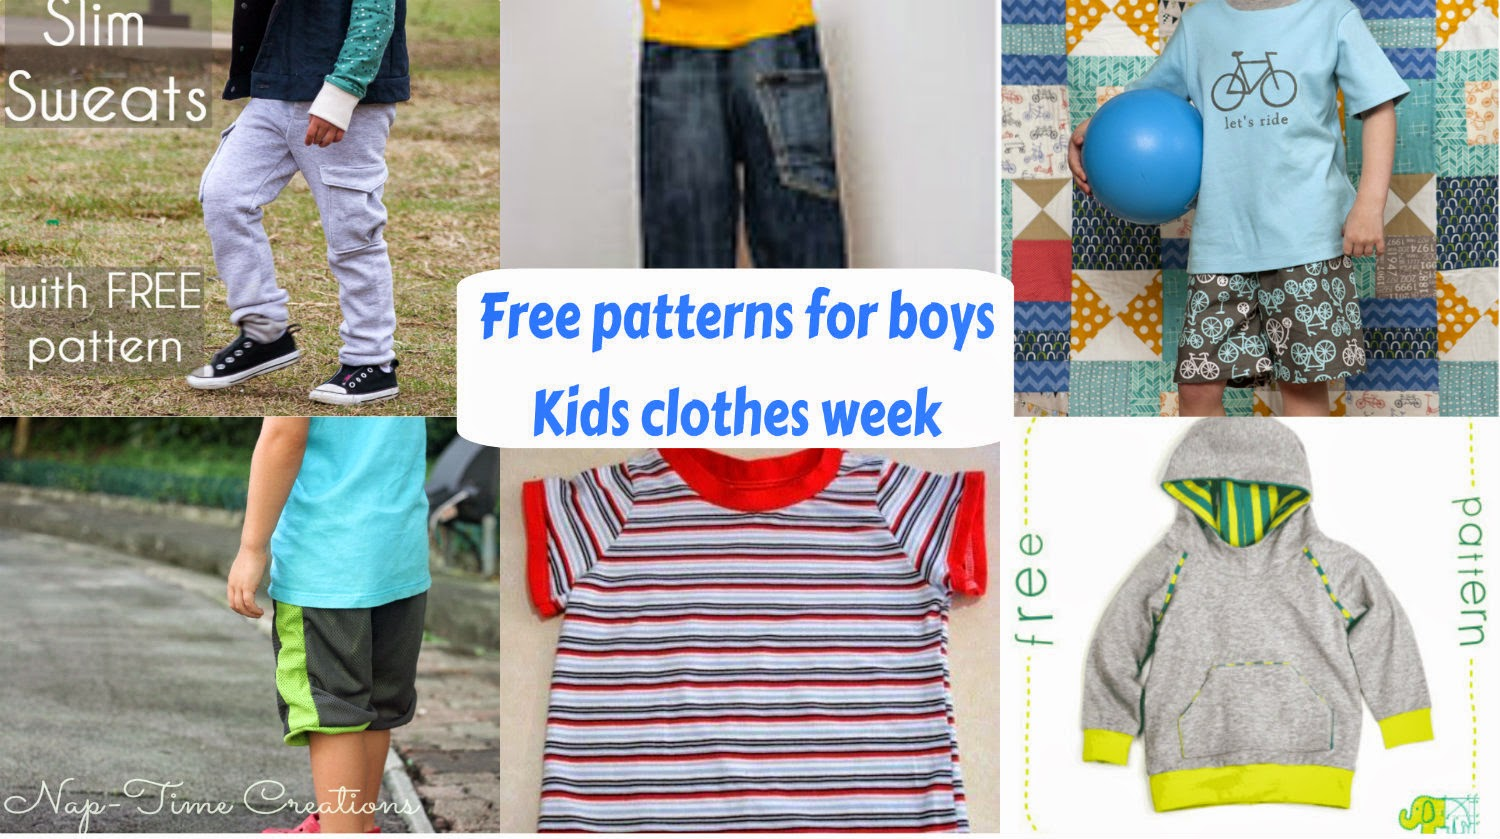 Seemesew free patterns for kids clothes week in honor of this week here are 6 new free boy patterns for you to sew up for your boys jeuxipadfo Images